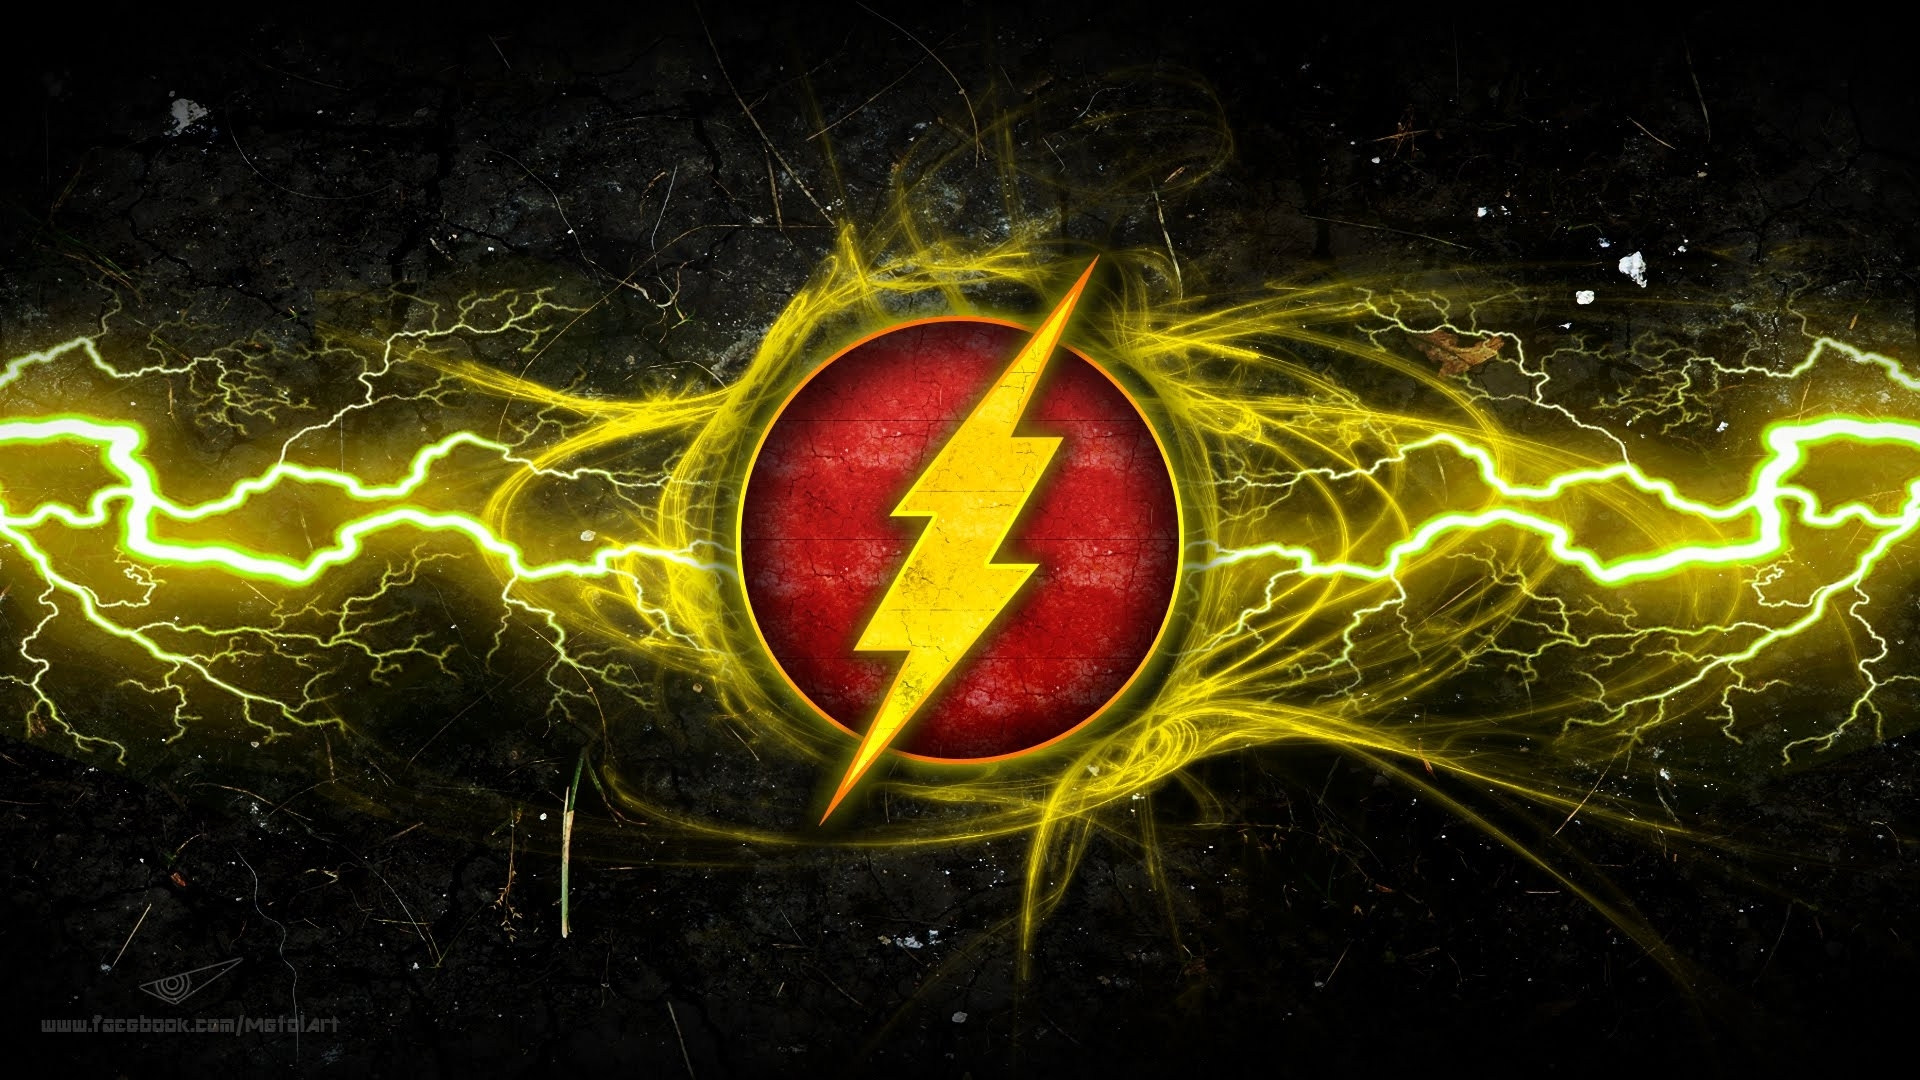 the flash wallpapers hd backgrounds, images, pics, photos free